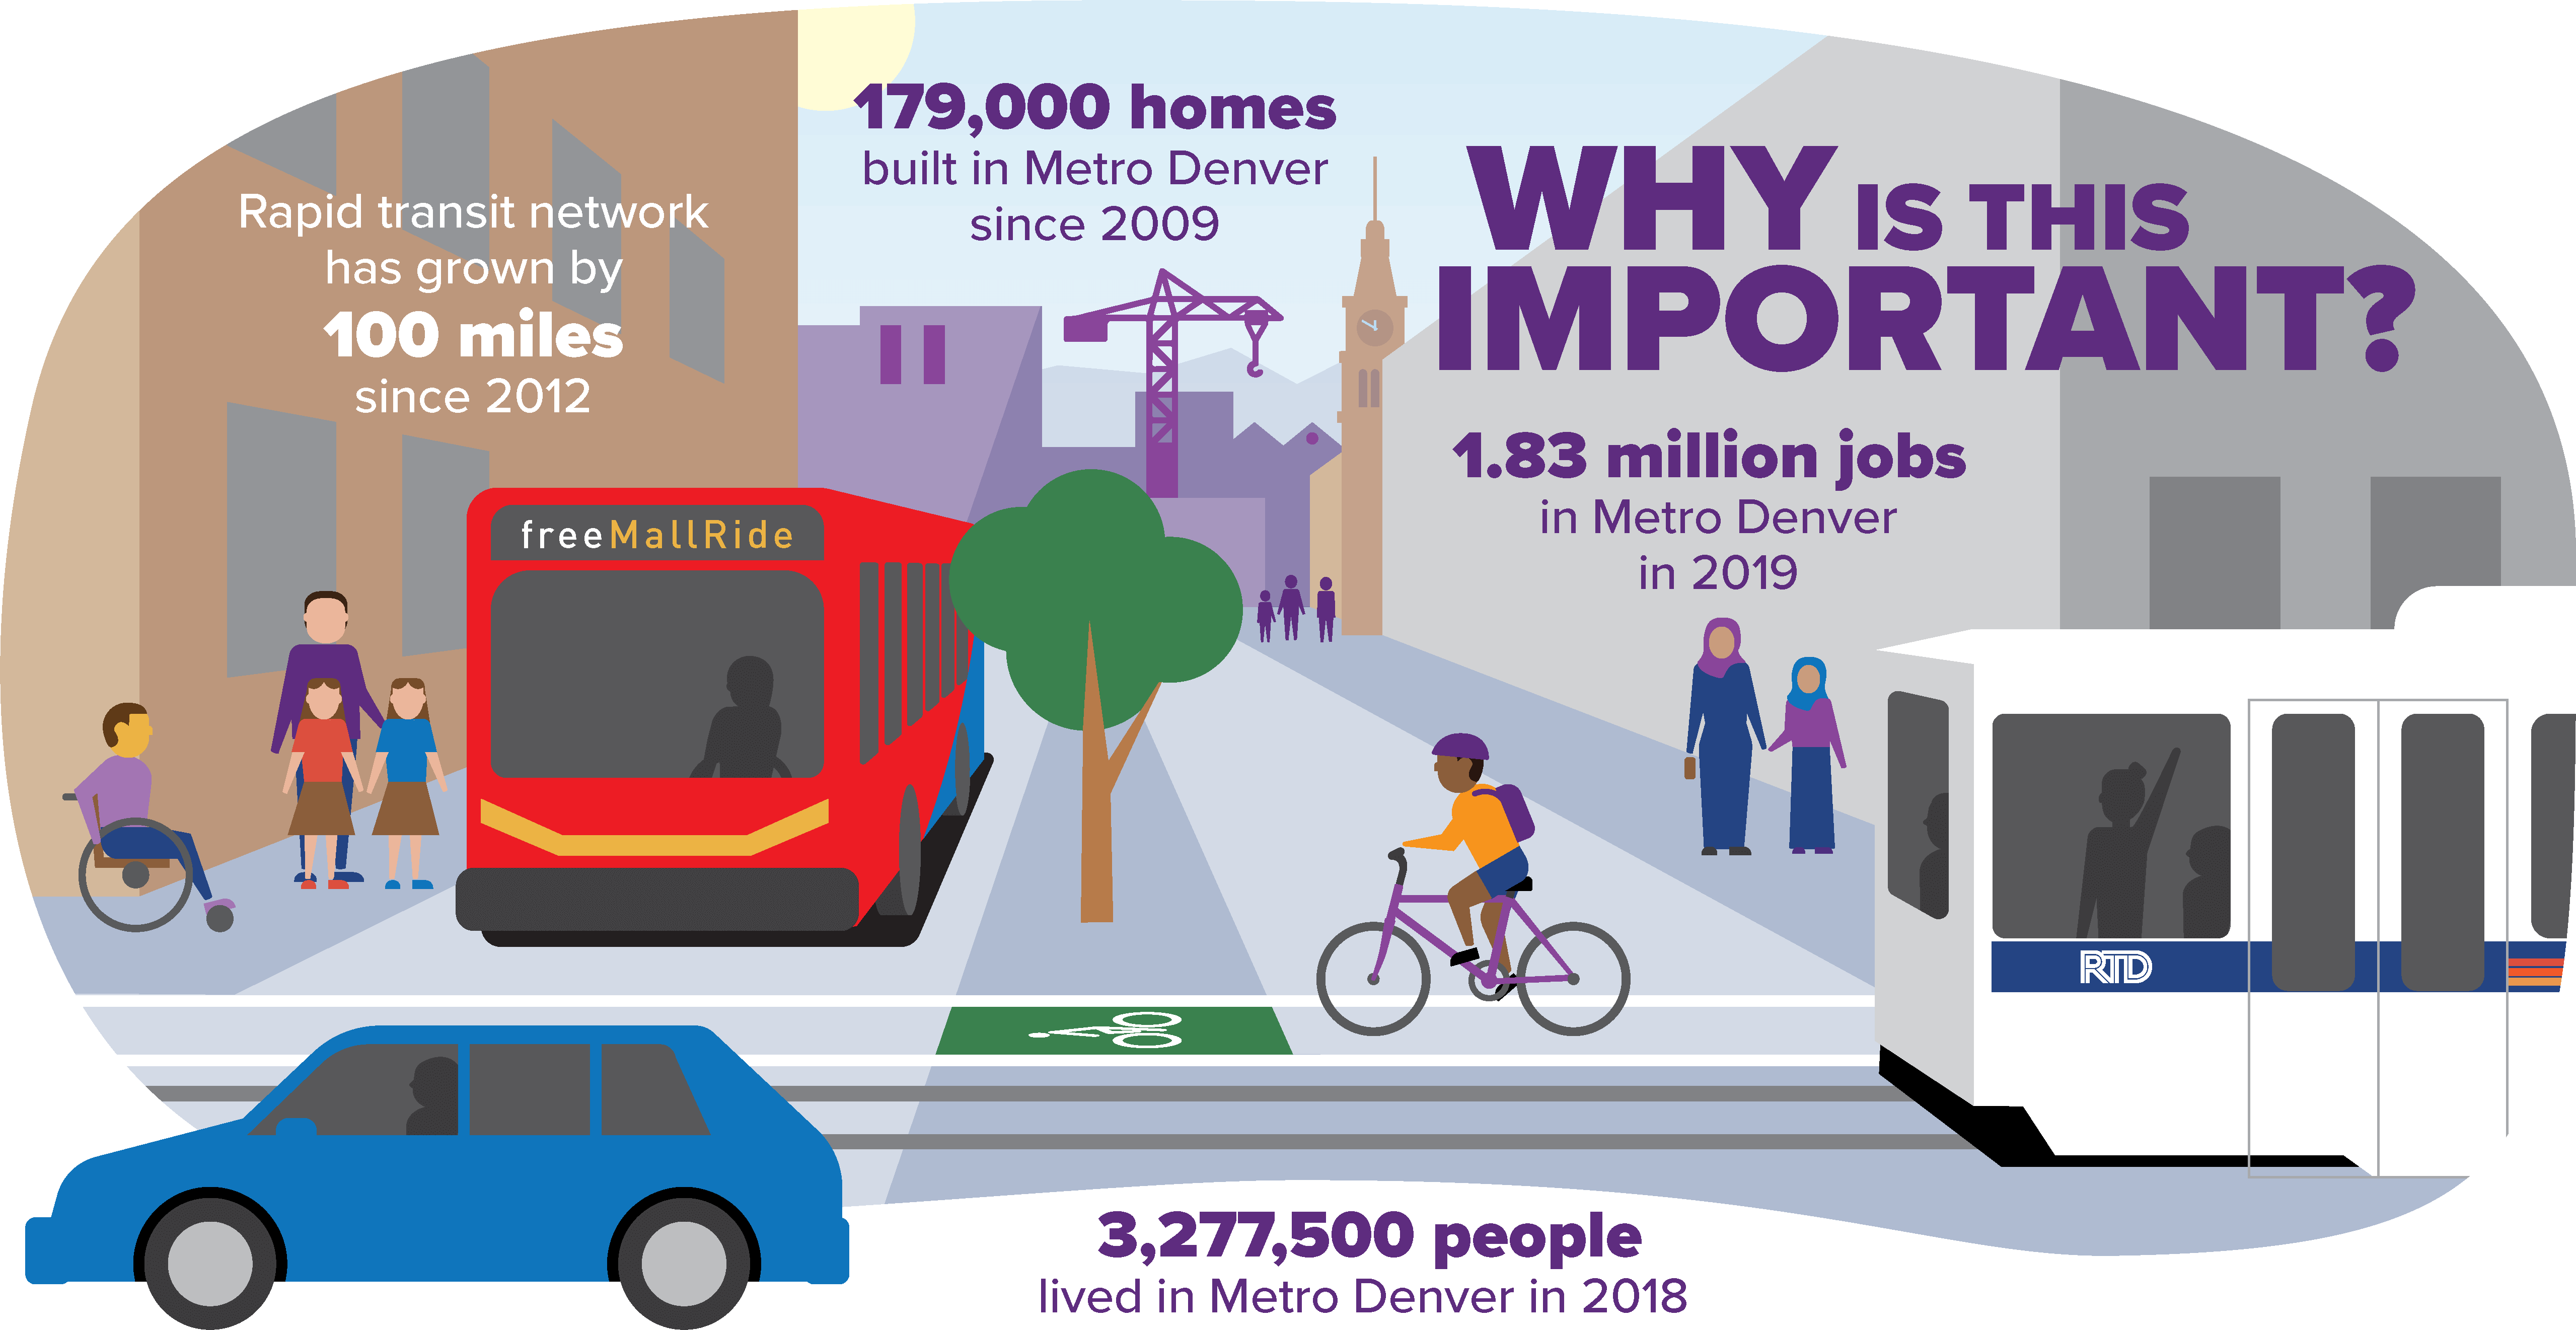 Infographic: Why is this important? 1.83 million jobs in Metro Denver in 2019. Rapid transit network has grown by 100 miles since 2012. 179,000 homes build in Metro Denver since 2009. 3,277,500 people in live in the Denver metro area - a 14% increase from 2010 to 2018